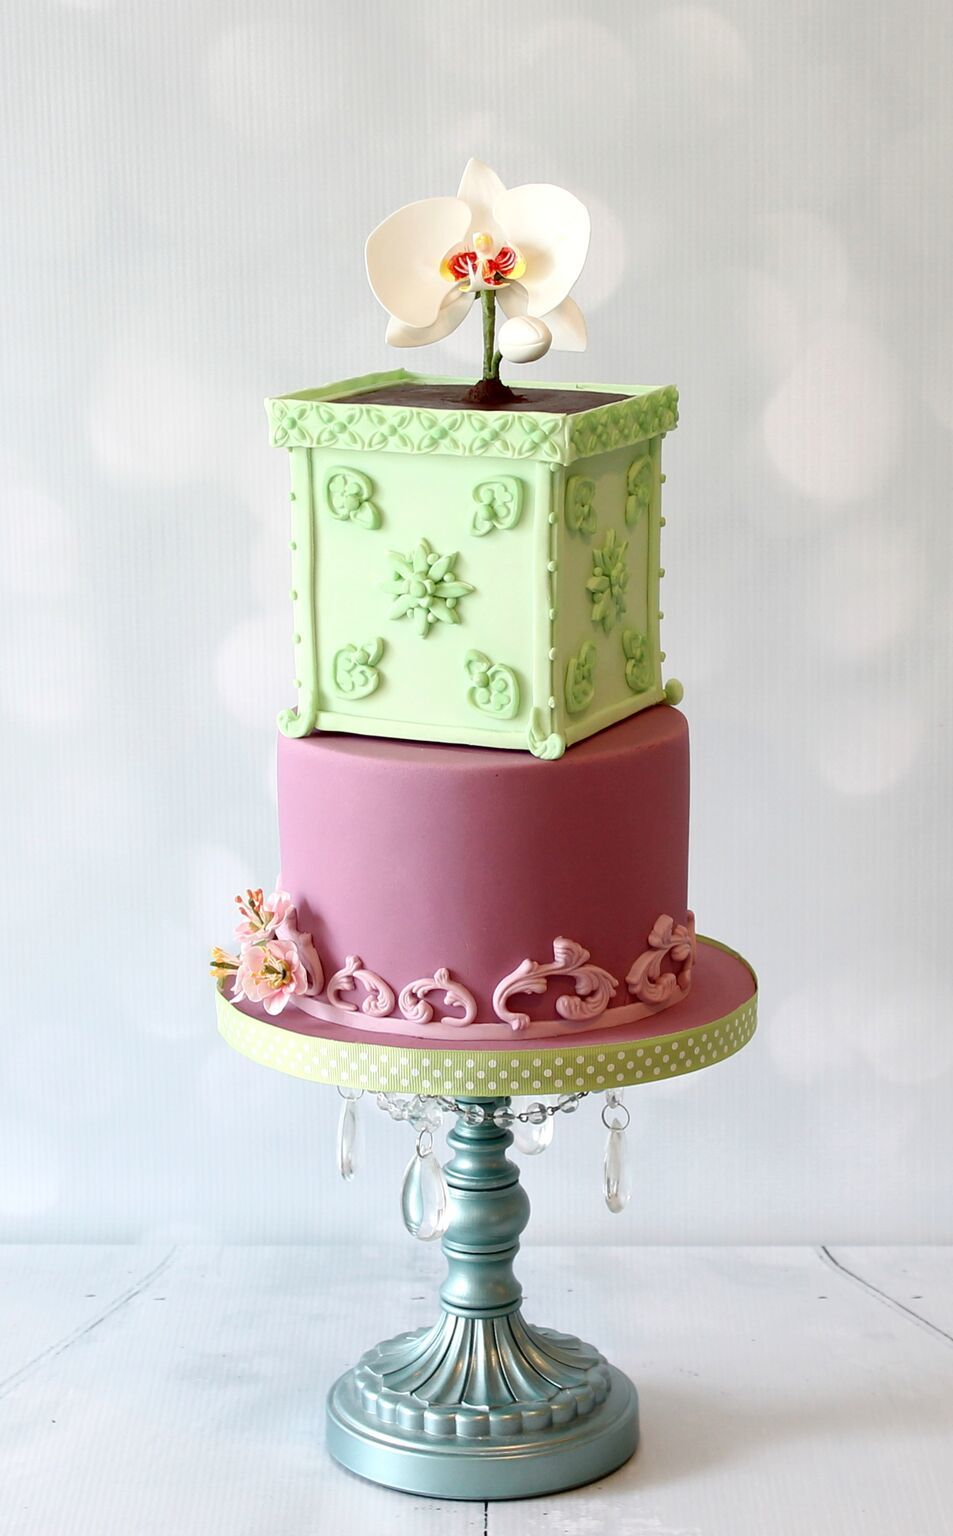 Violet-Tran-The-Violet-Cake-Shop-Seasonal-Celebration-Spring-1.jpeg#asset:11838